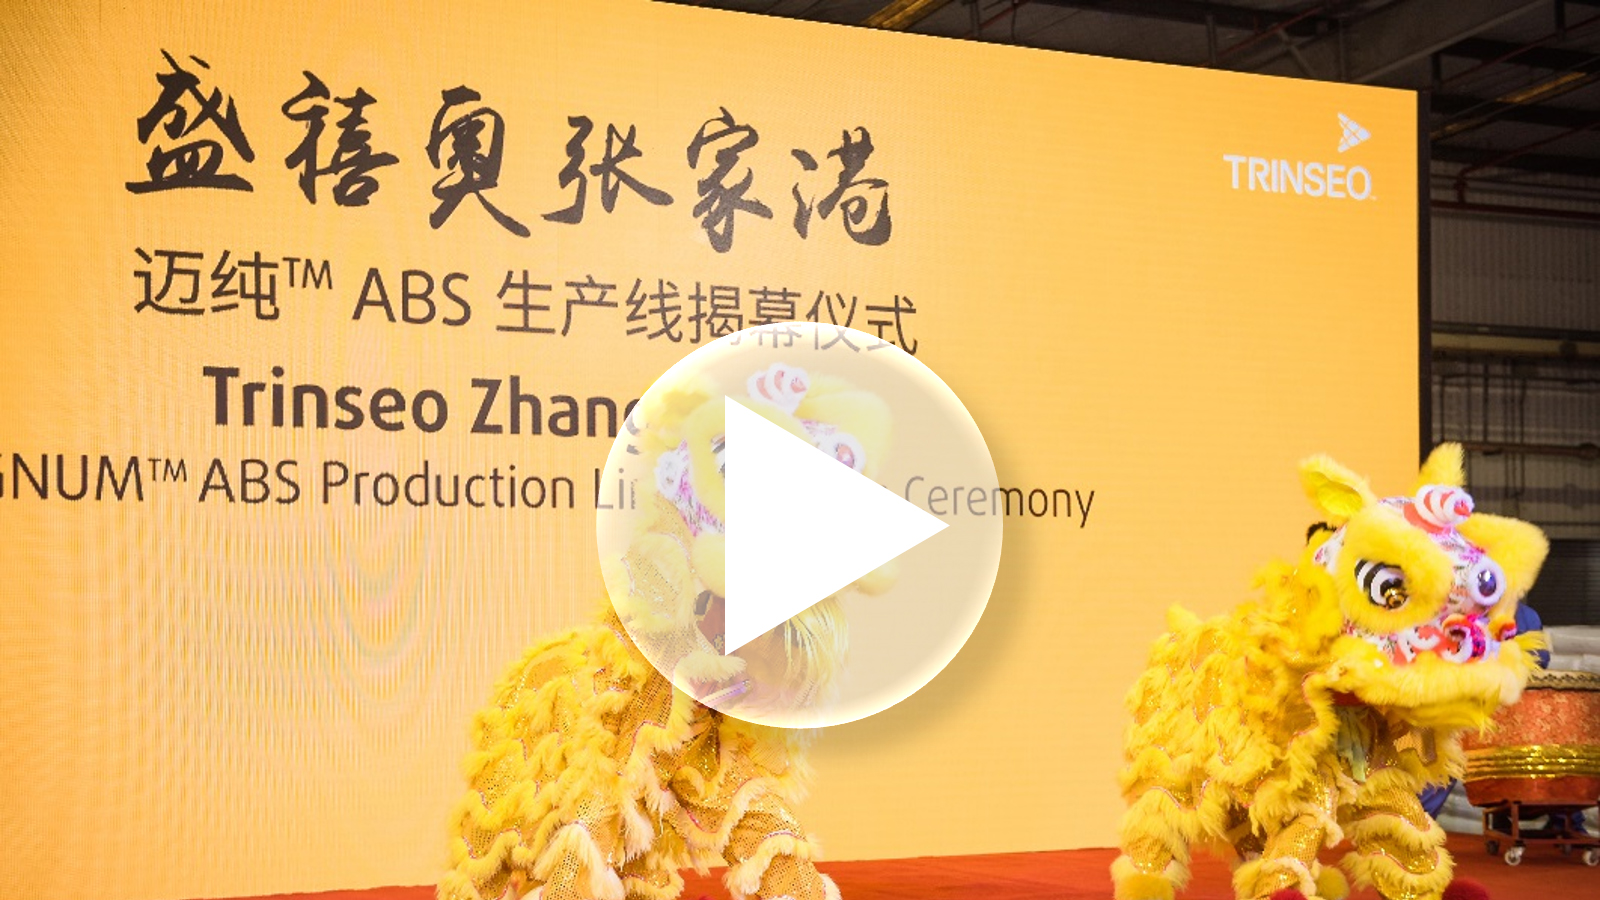 Video thumbnail from Zhangjiagang unveiling ceremony